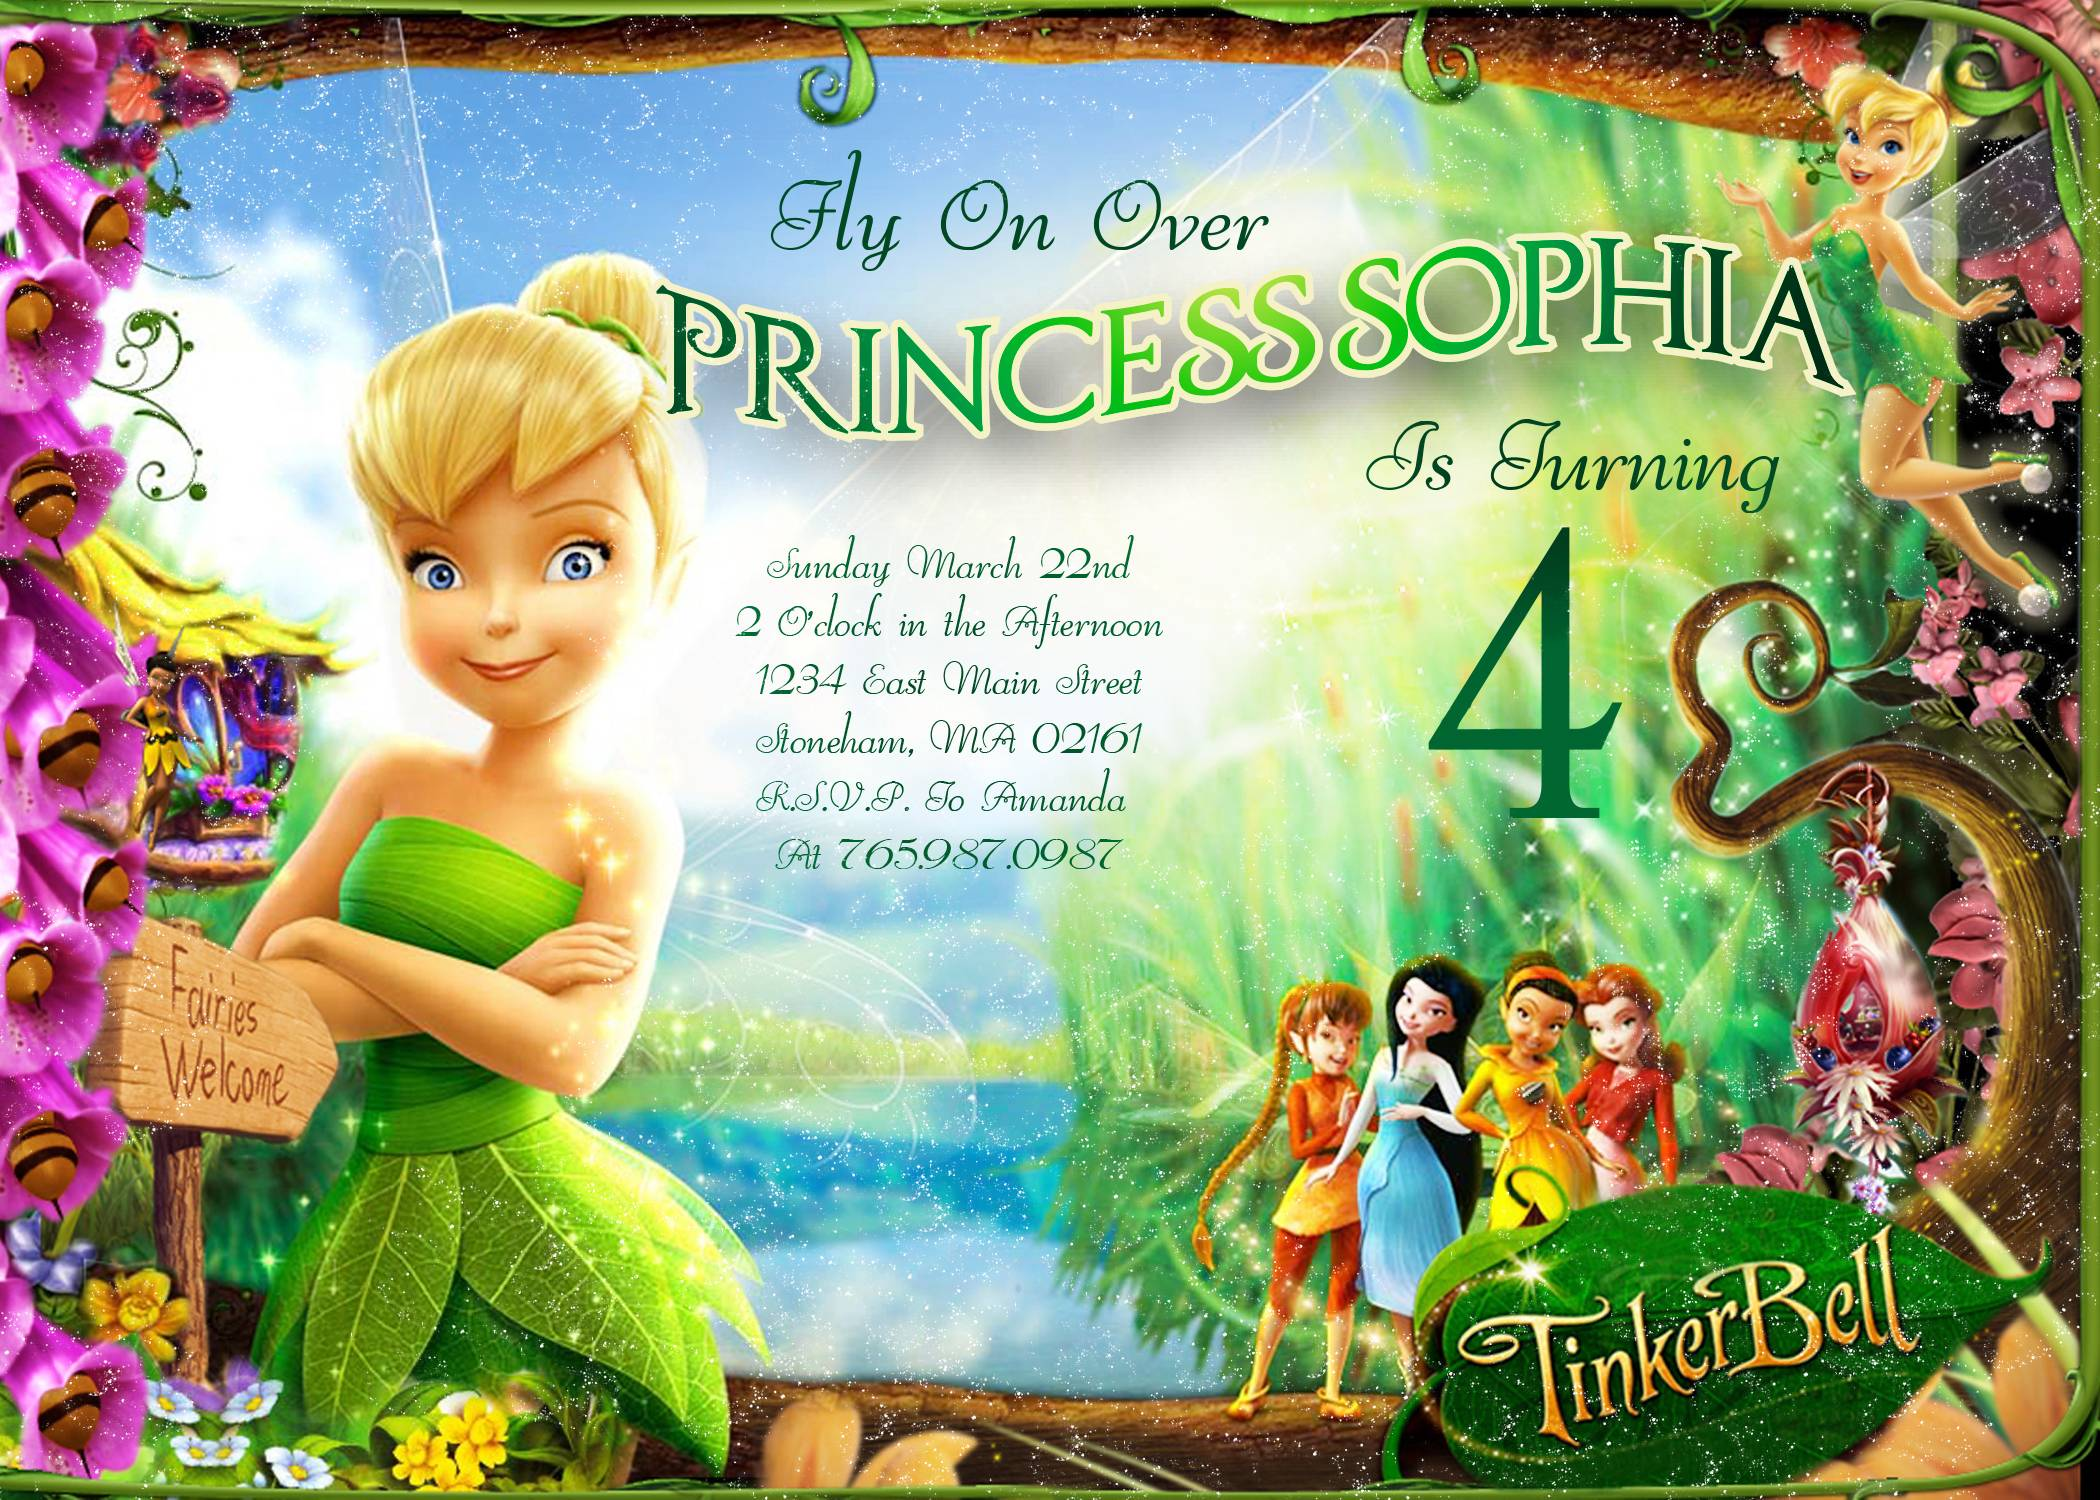 tinkerbell backgrounds cave images for > baby tinkerbell background